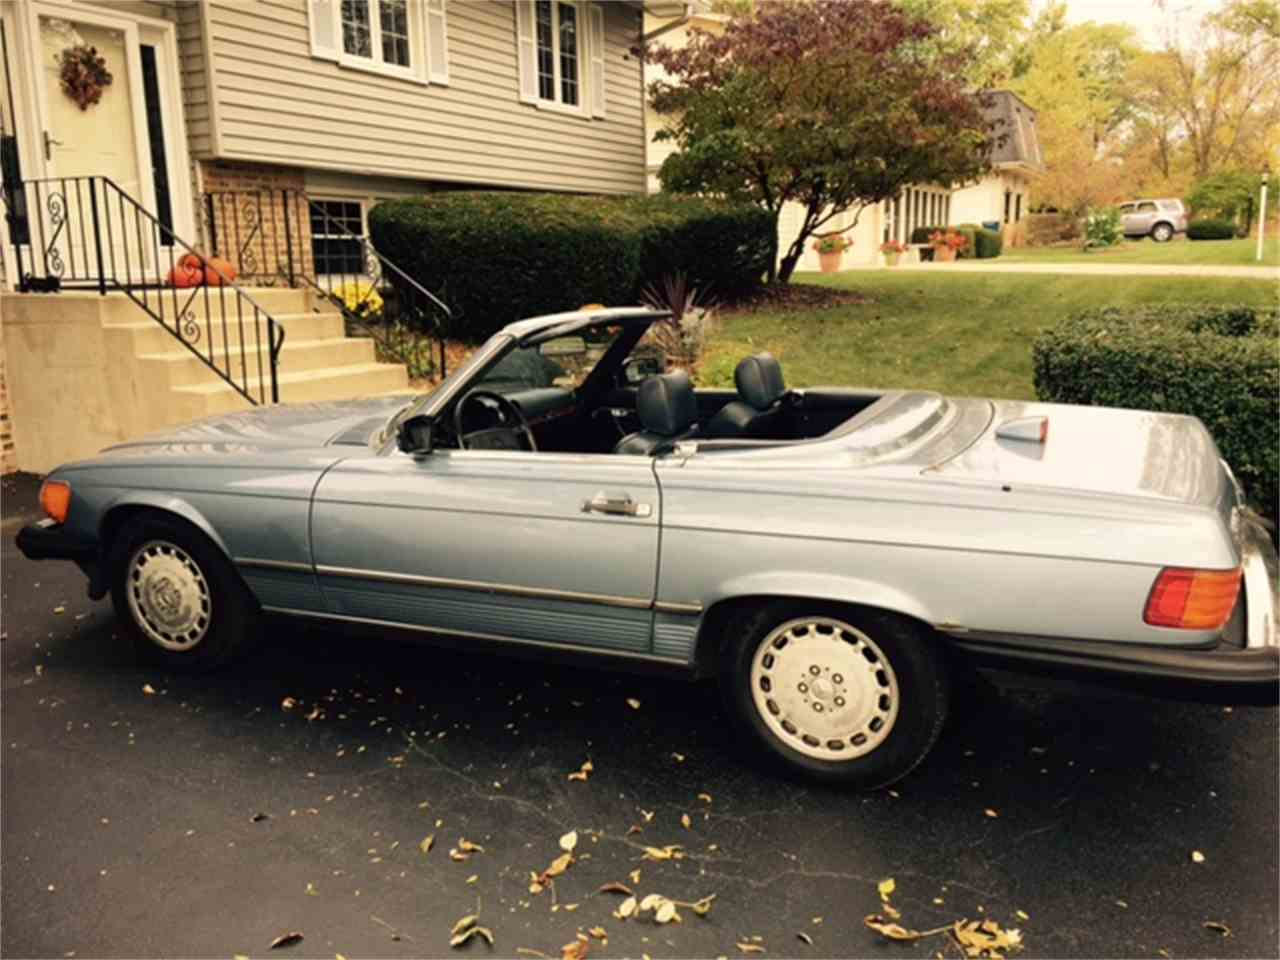 Large Picture of 1986 560SL located in DOWNERS GROVE Illinois - $7,900.00 Offered by a Private Seller - JP35